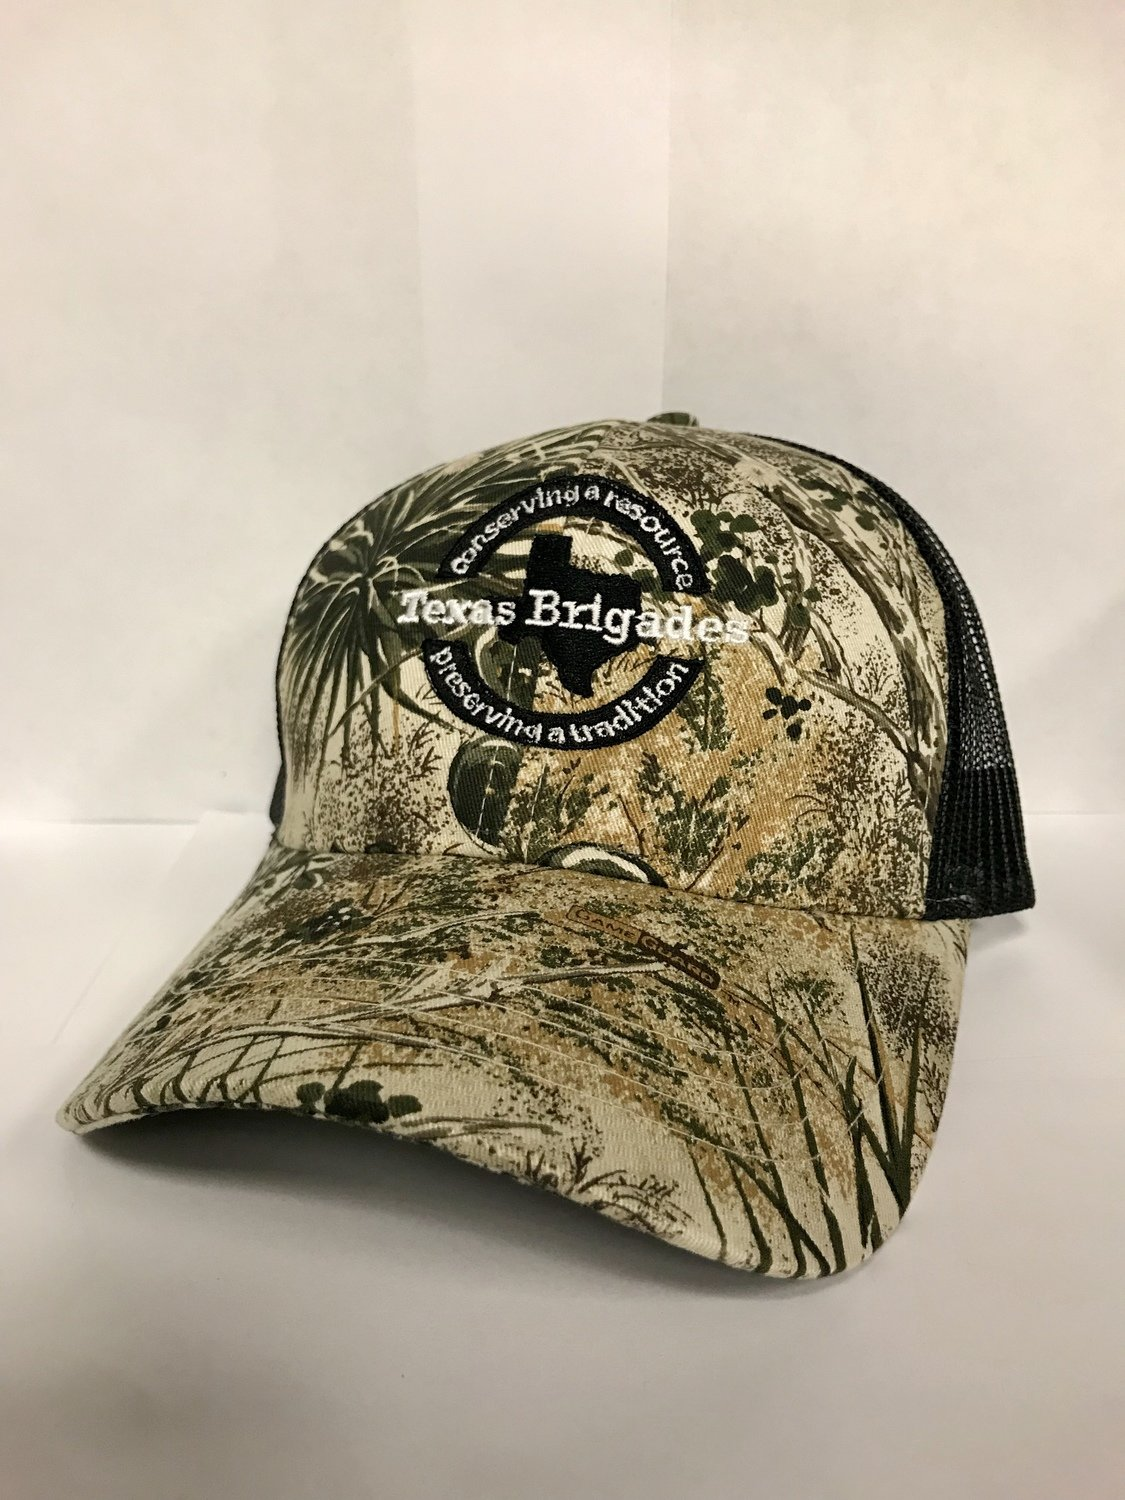 Texas Brigades Game Guard Camo Hat